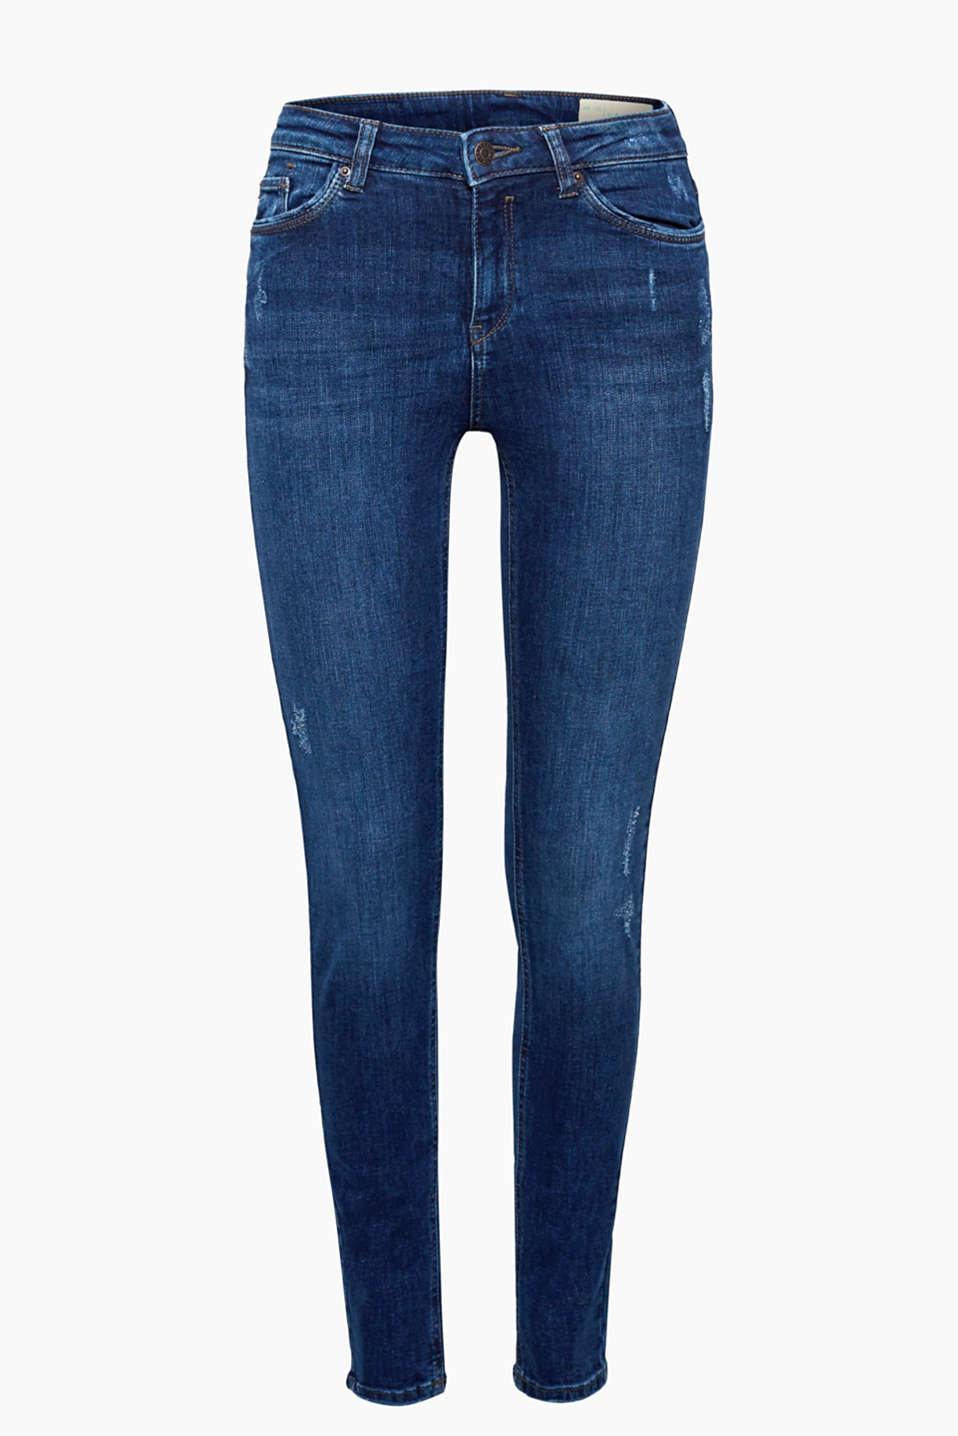 These stretch jeans in an attractively finished, high-quality organic cotton are stylish and great for every day!